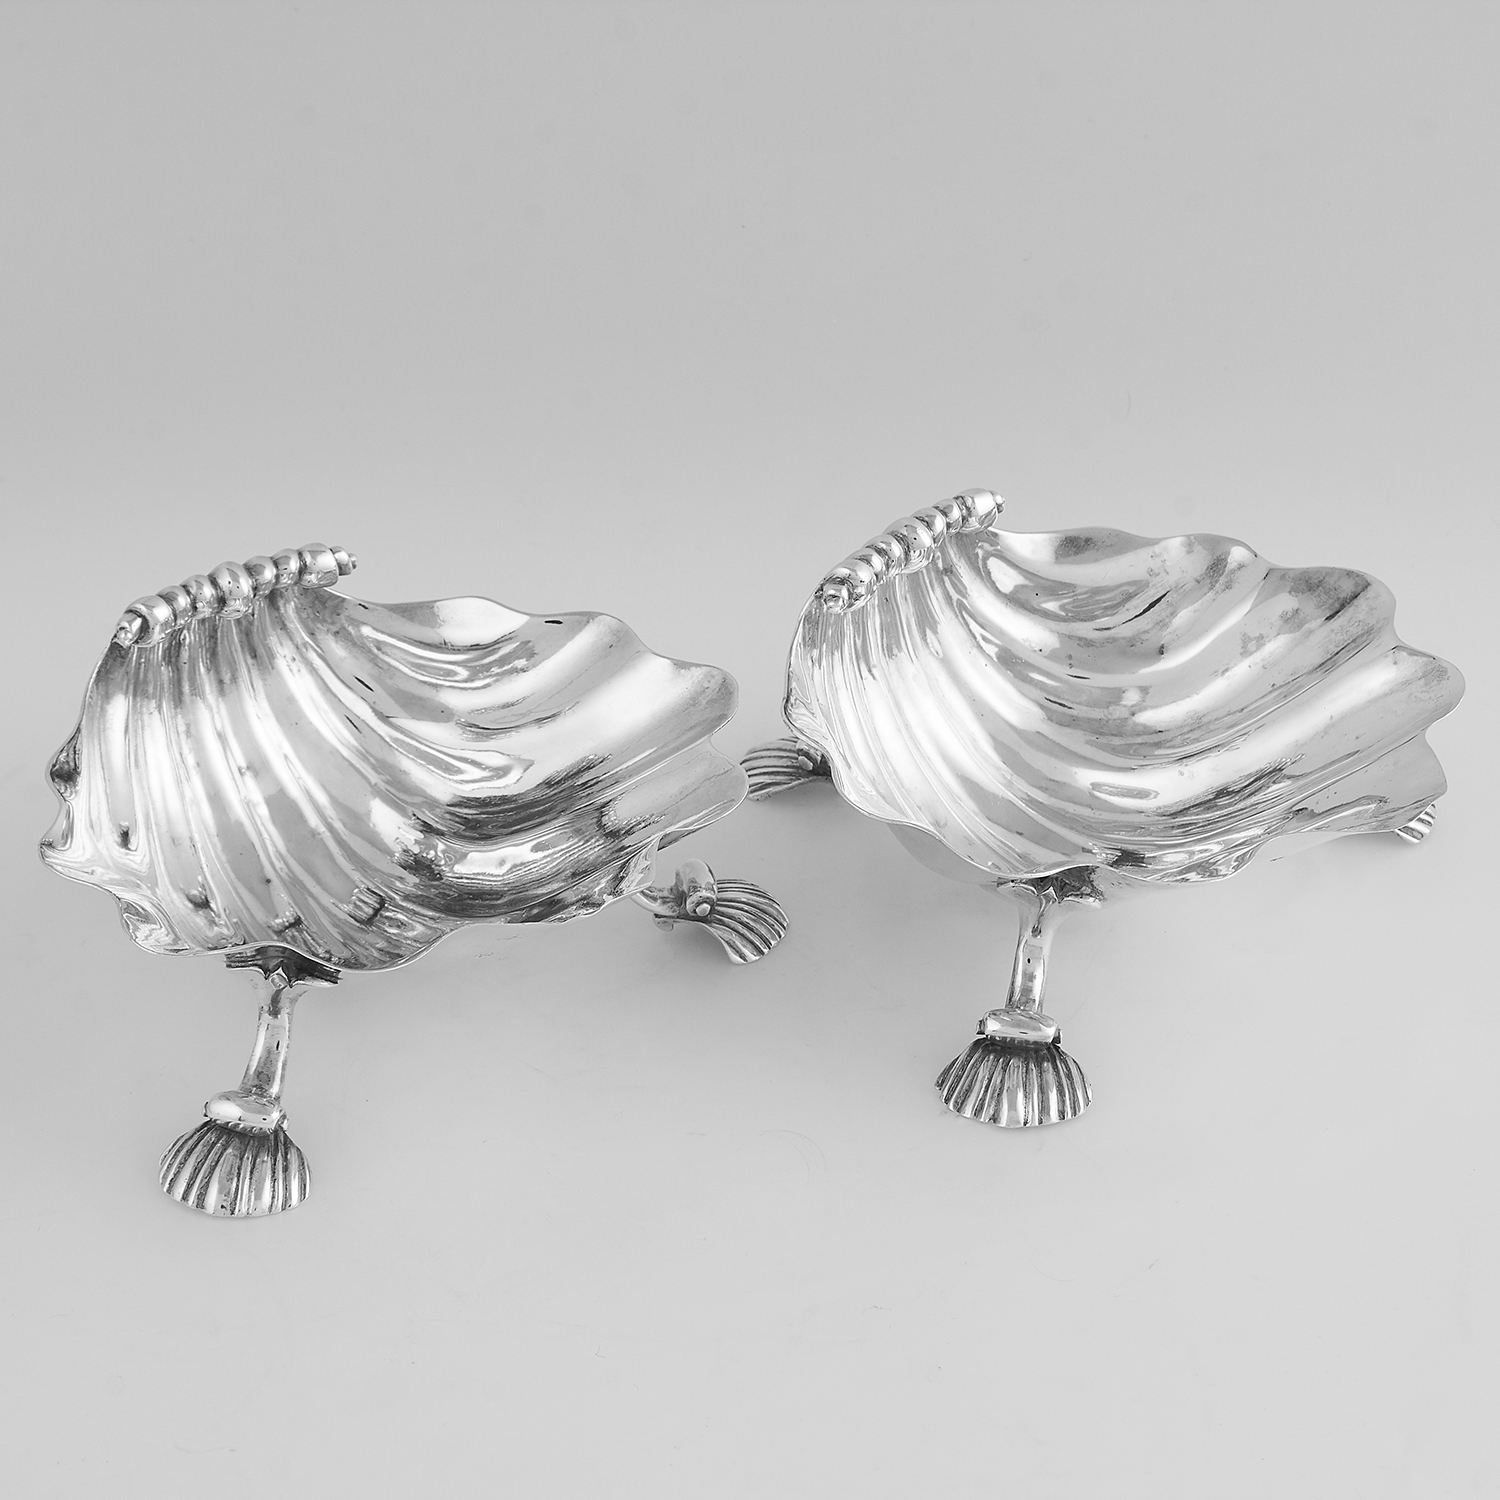 Los 62 - PAIR OF ANTIQUE GEORGE IV STERLING SILVER SHELL DISHES, C & J FRY, LONDON 1823 each designed as a